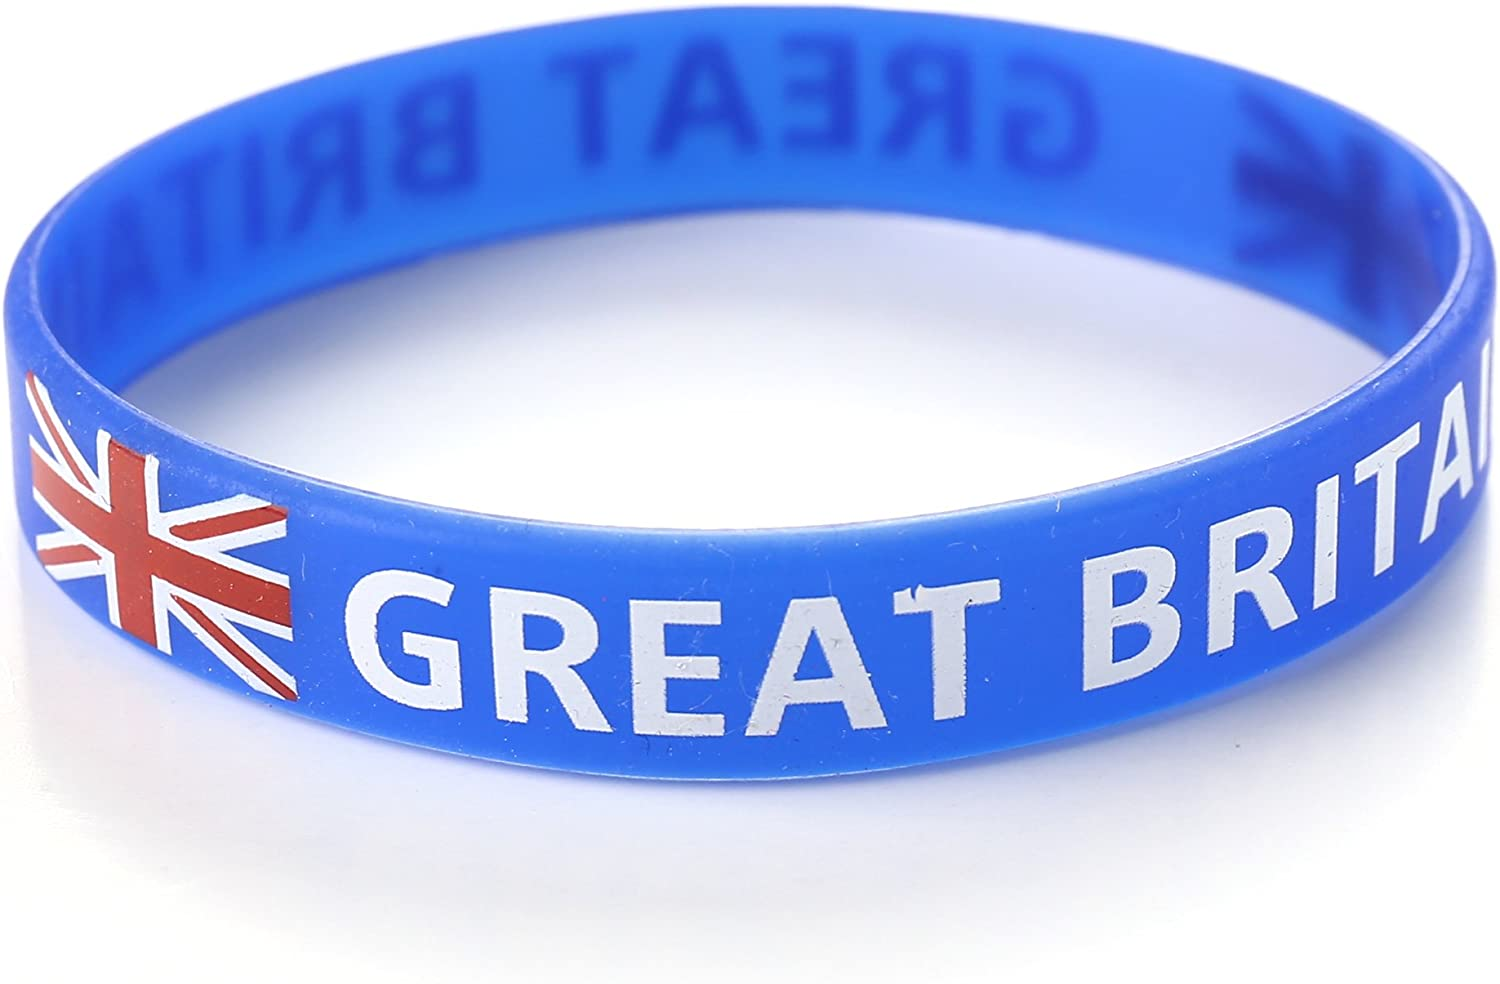 Pack of 5 Komonee Great Britain Blue Union Jack Silicone Wristbands